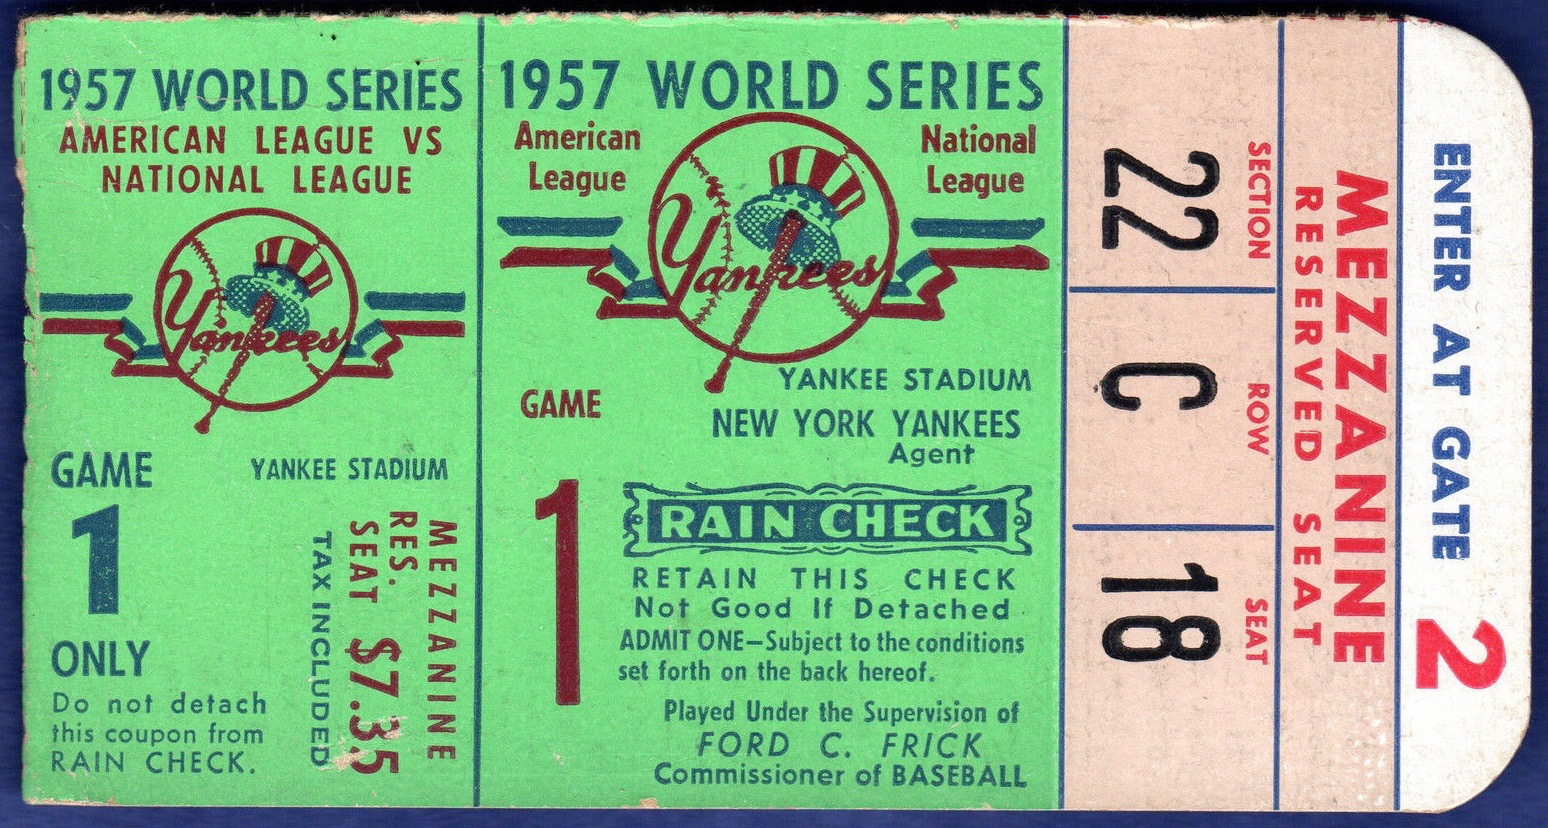 1957 World Series Game 1 ticket stub Braves at Yankees